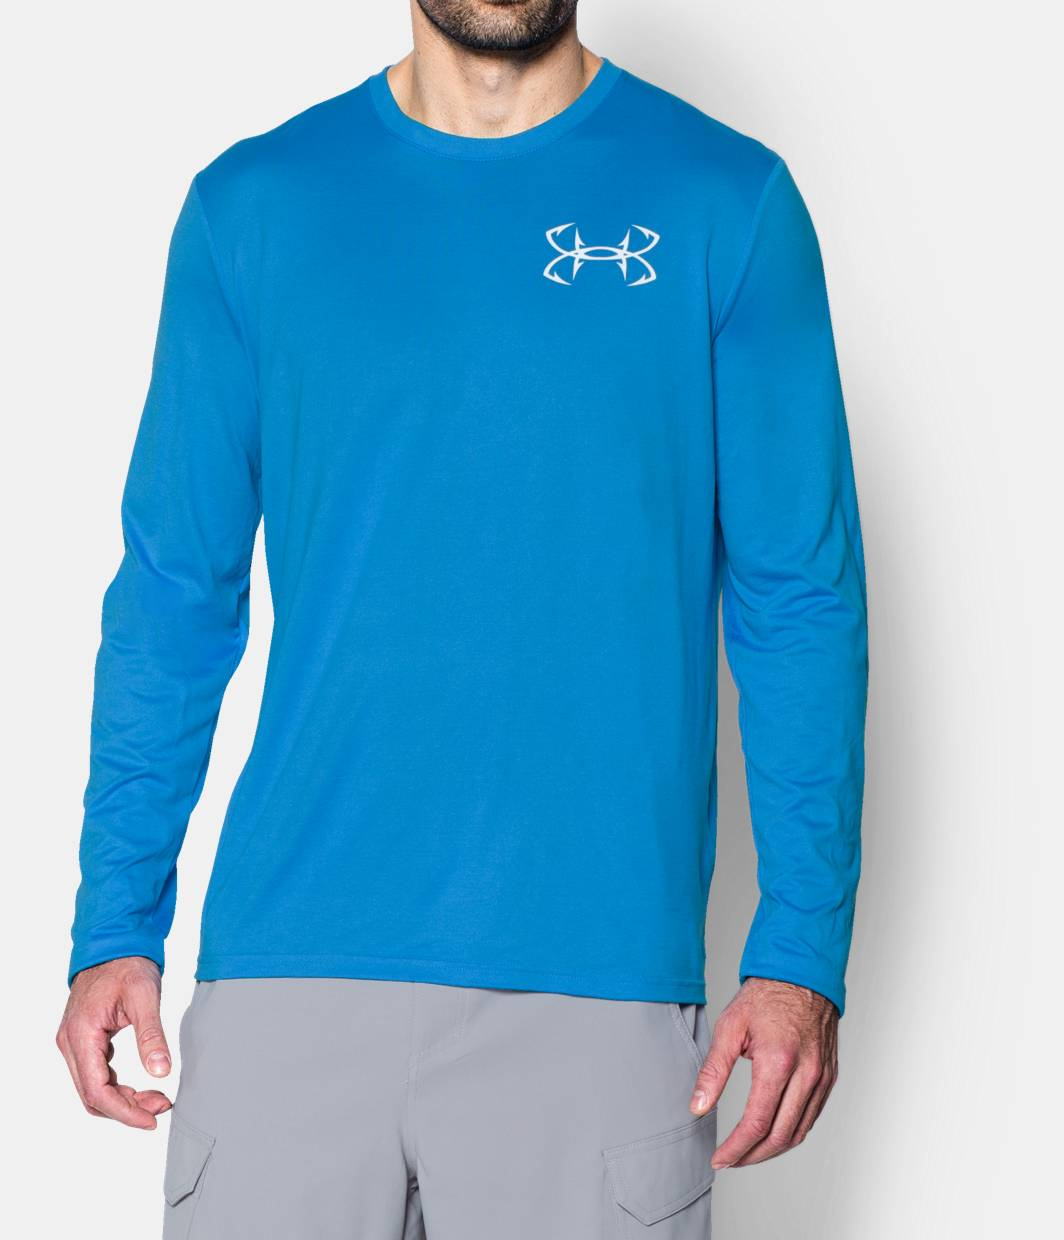 Men s ua fishing long sleeve t shirt under armour ca for Under armor fishing shirt